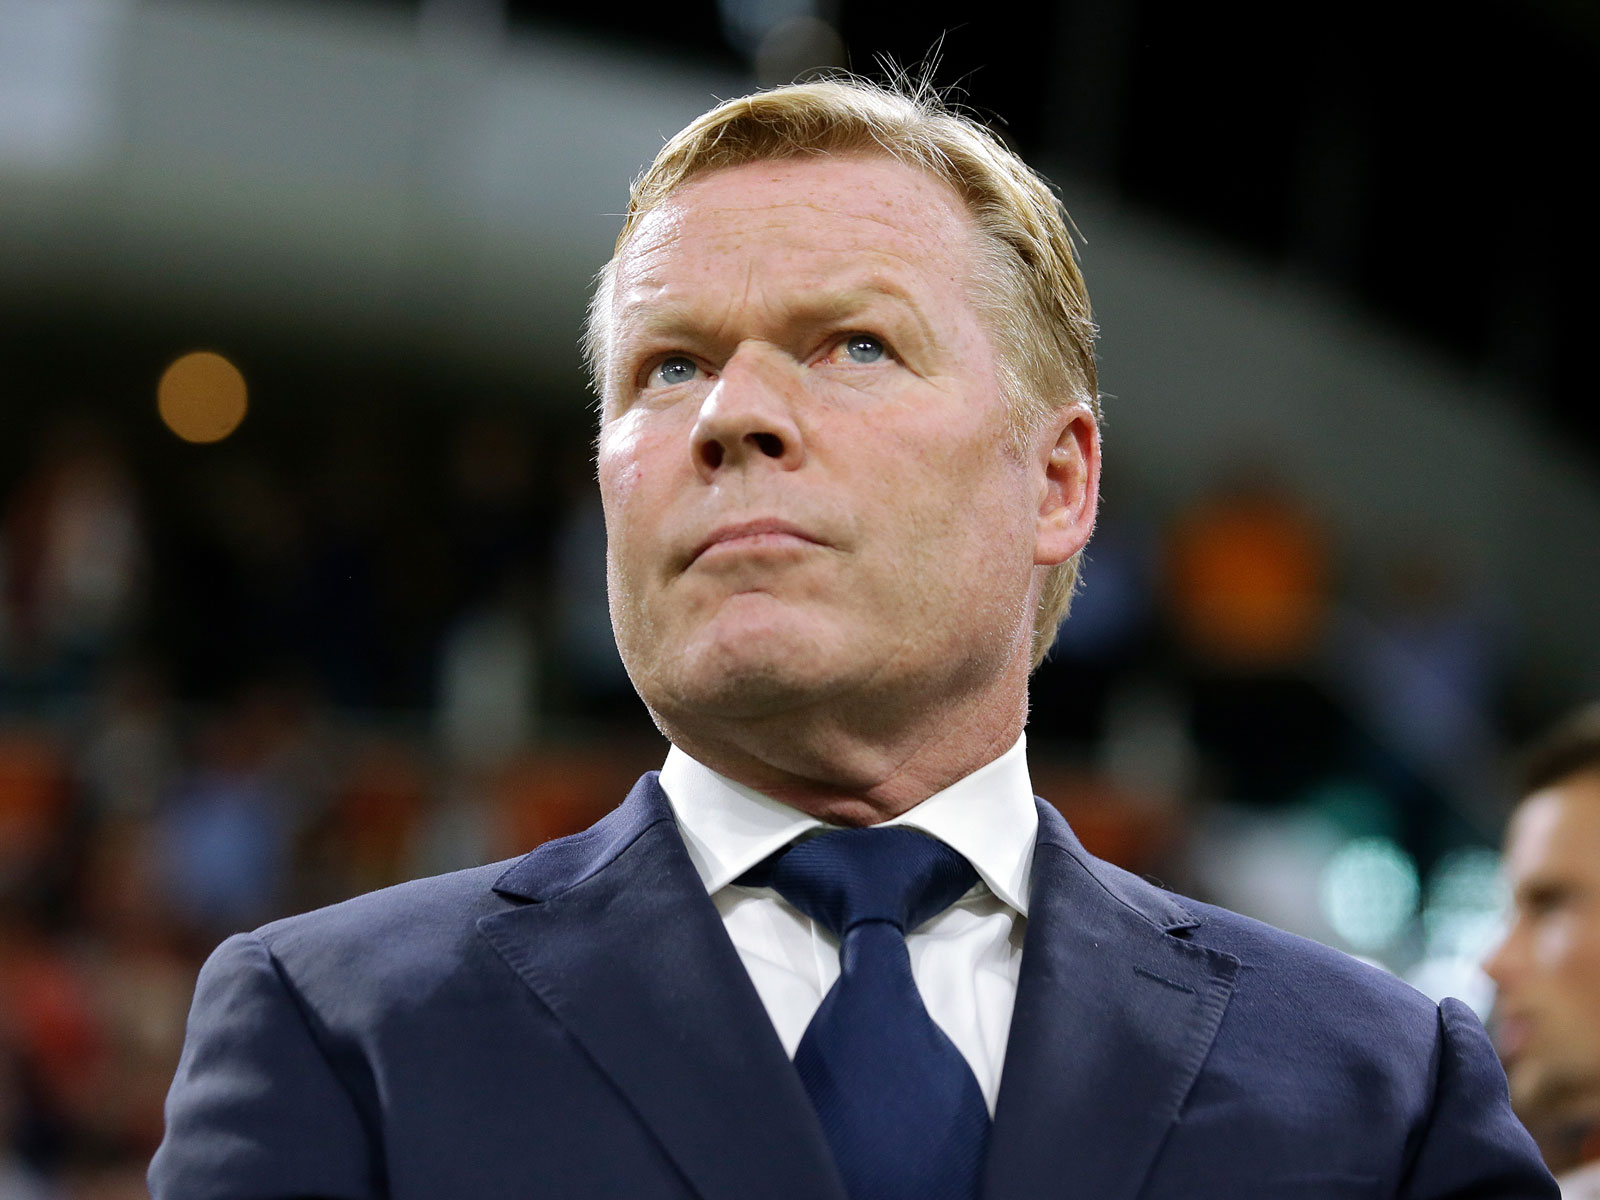 Ronald Koeman has overseen a return to form for the Netherlands